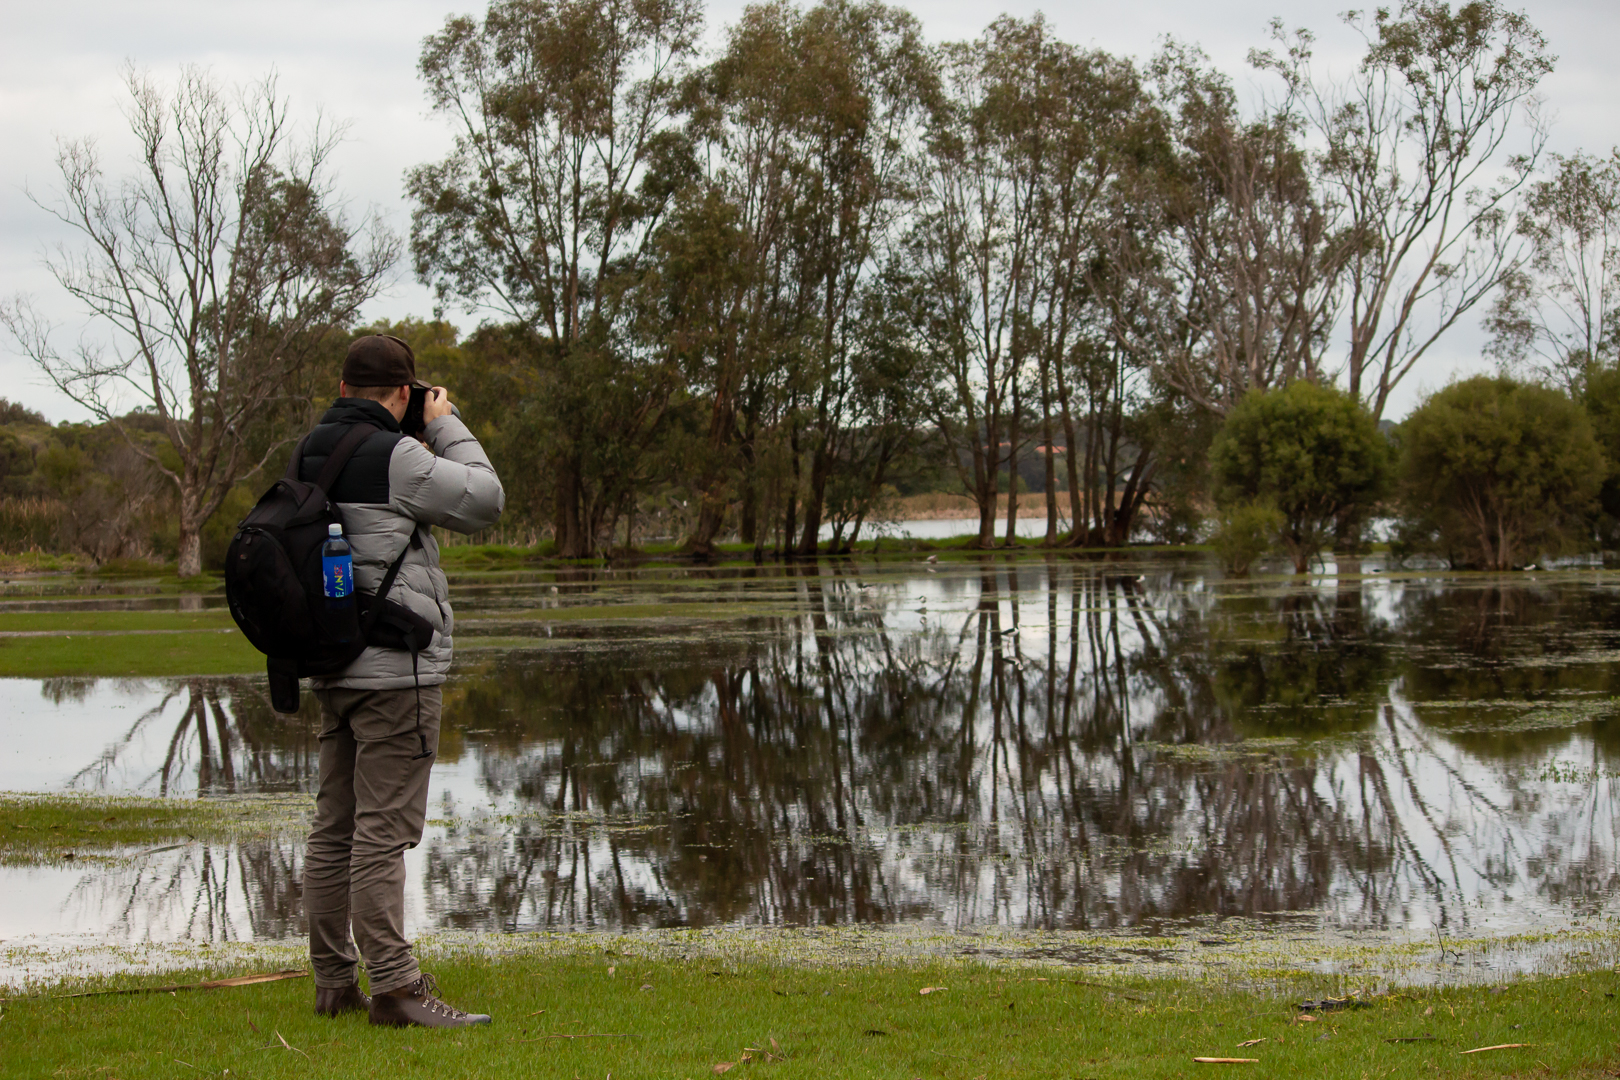 Riley Cavanagh shooting an image of the flooded Herdsman Lake, WA, Winter 2018.